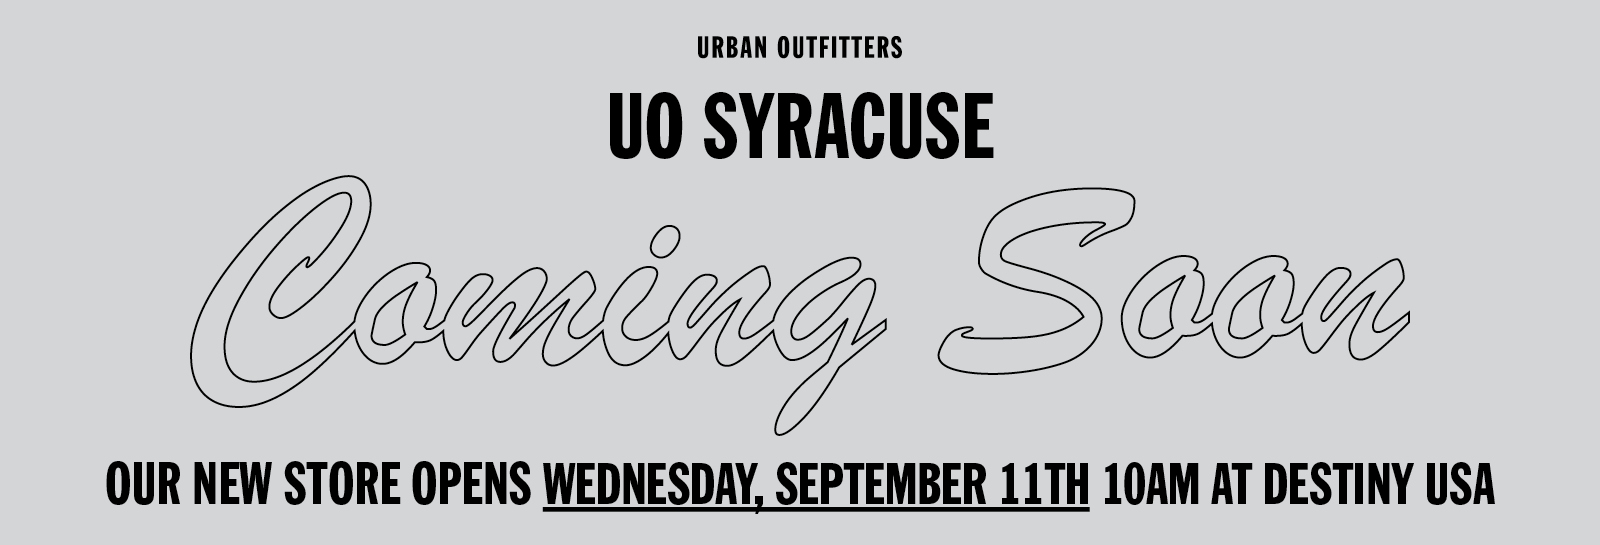 Destiny USA - Shopping, Dining and Entertainment in Syracuse, NY